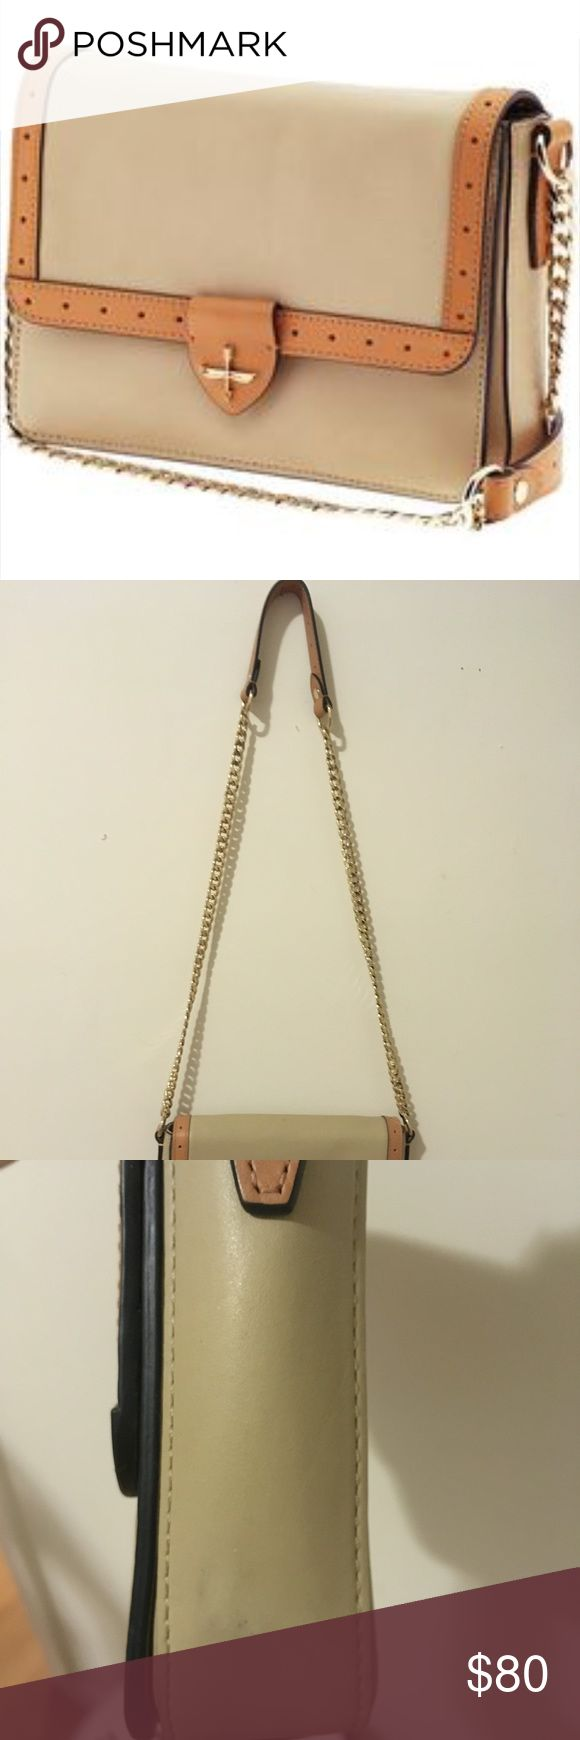 """Pour La Victoire Aline Crossbody/Shoulder Bag (Not Zara- listed for exposure) This beautiful leather bag can be used in casual and more formal occasions! It measures 2.5 x 10 x 7 inches with 42"""" inch drop. It's been gently used for just couple of times! 👍🏼 Zara Bags Crossbody Bags"""